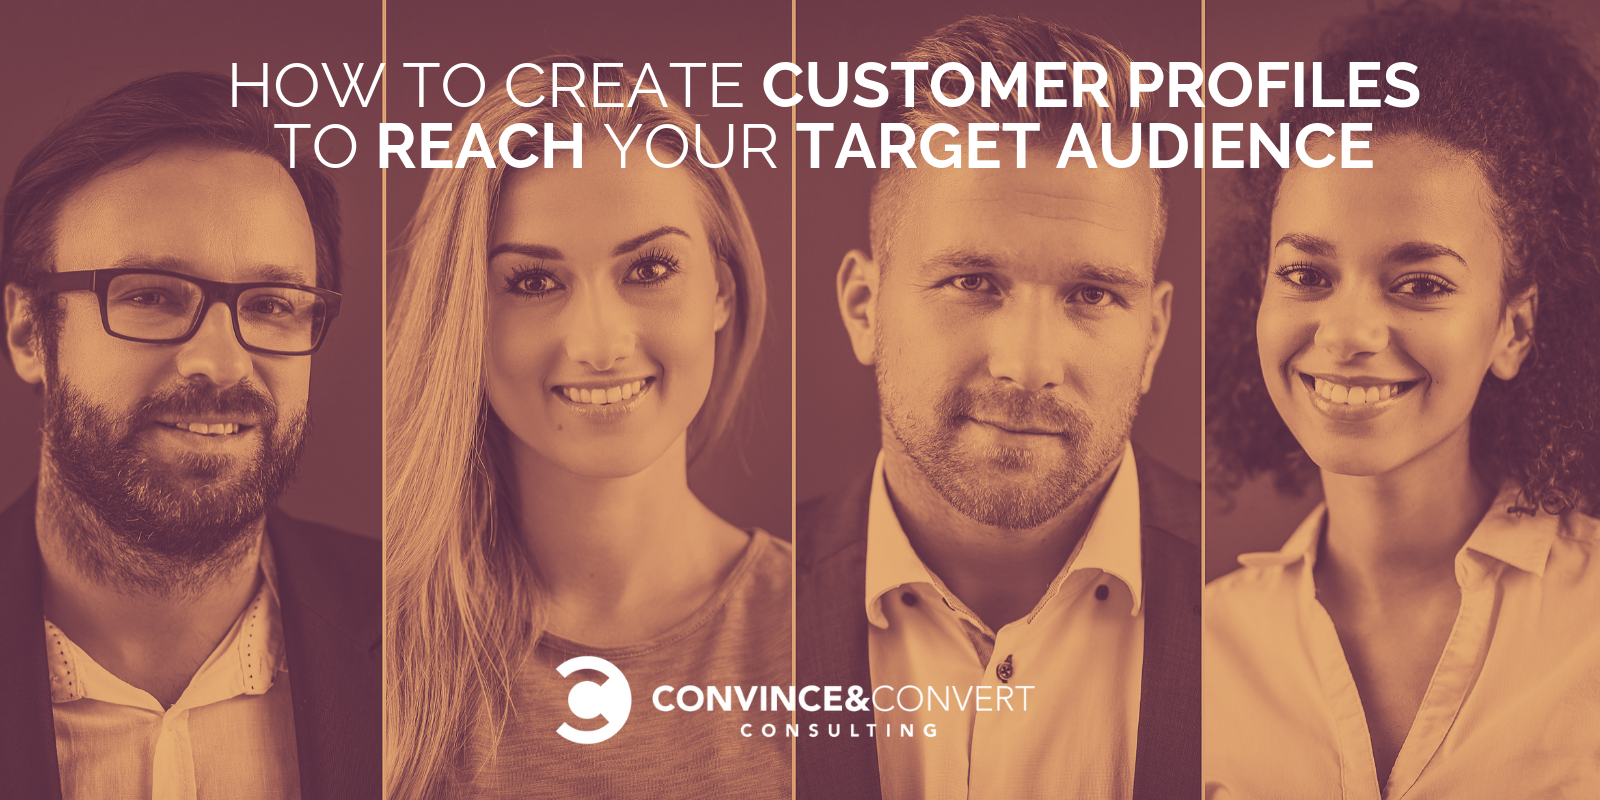 How to Create Customer Profiles to Reach Your Target Audience